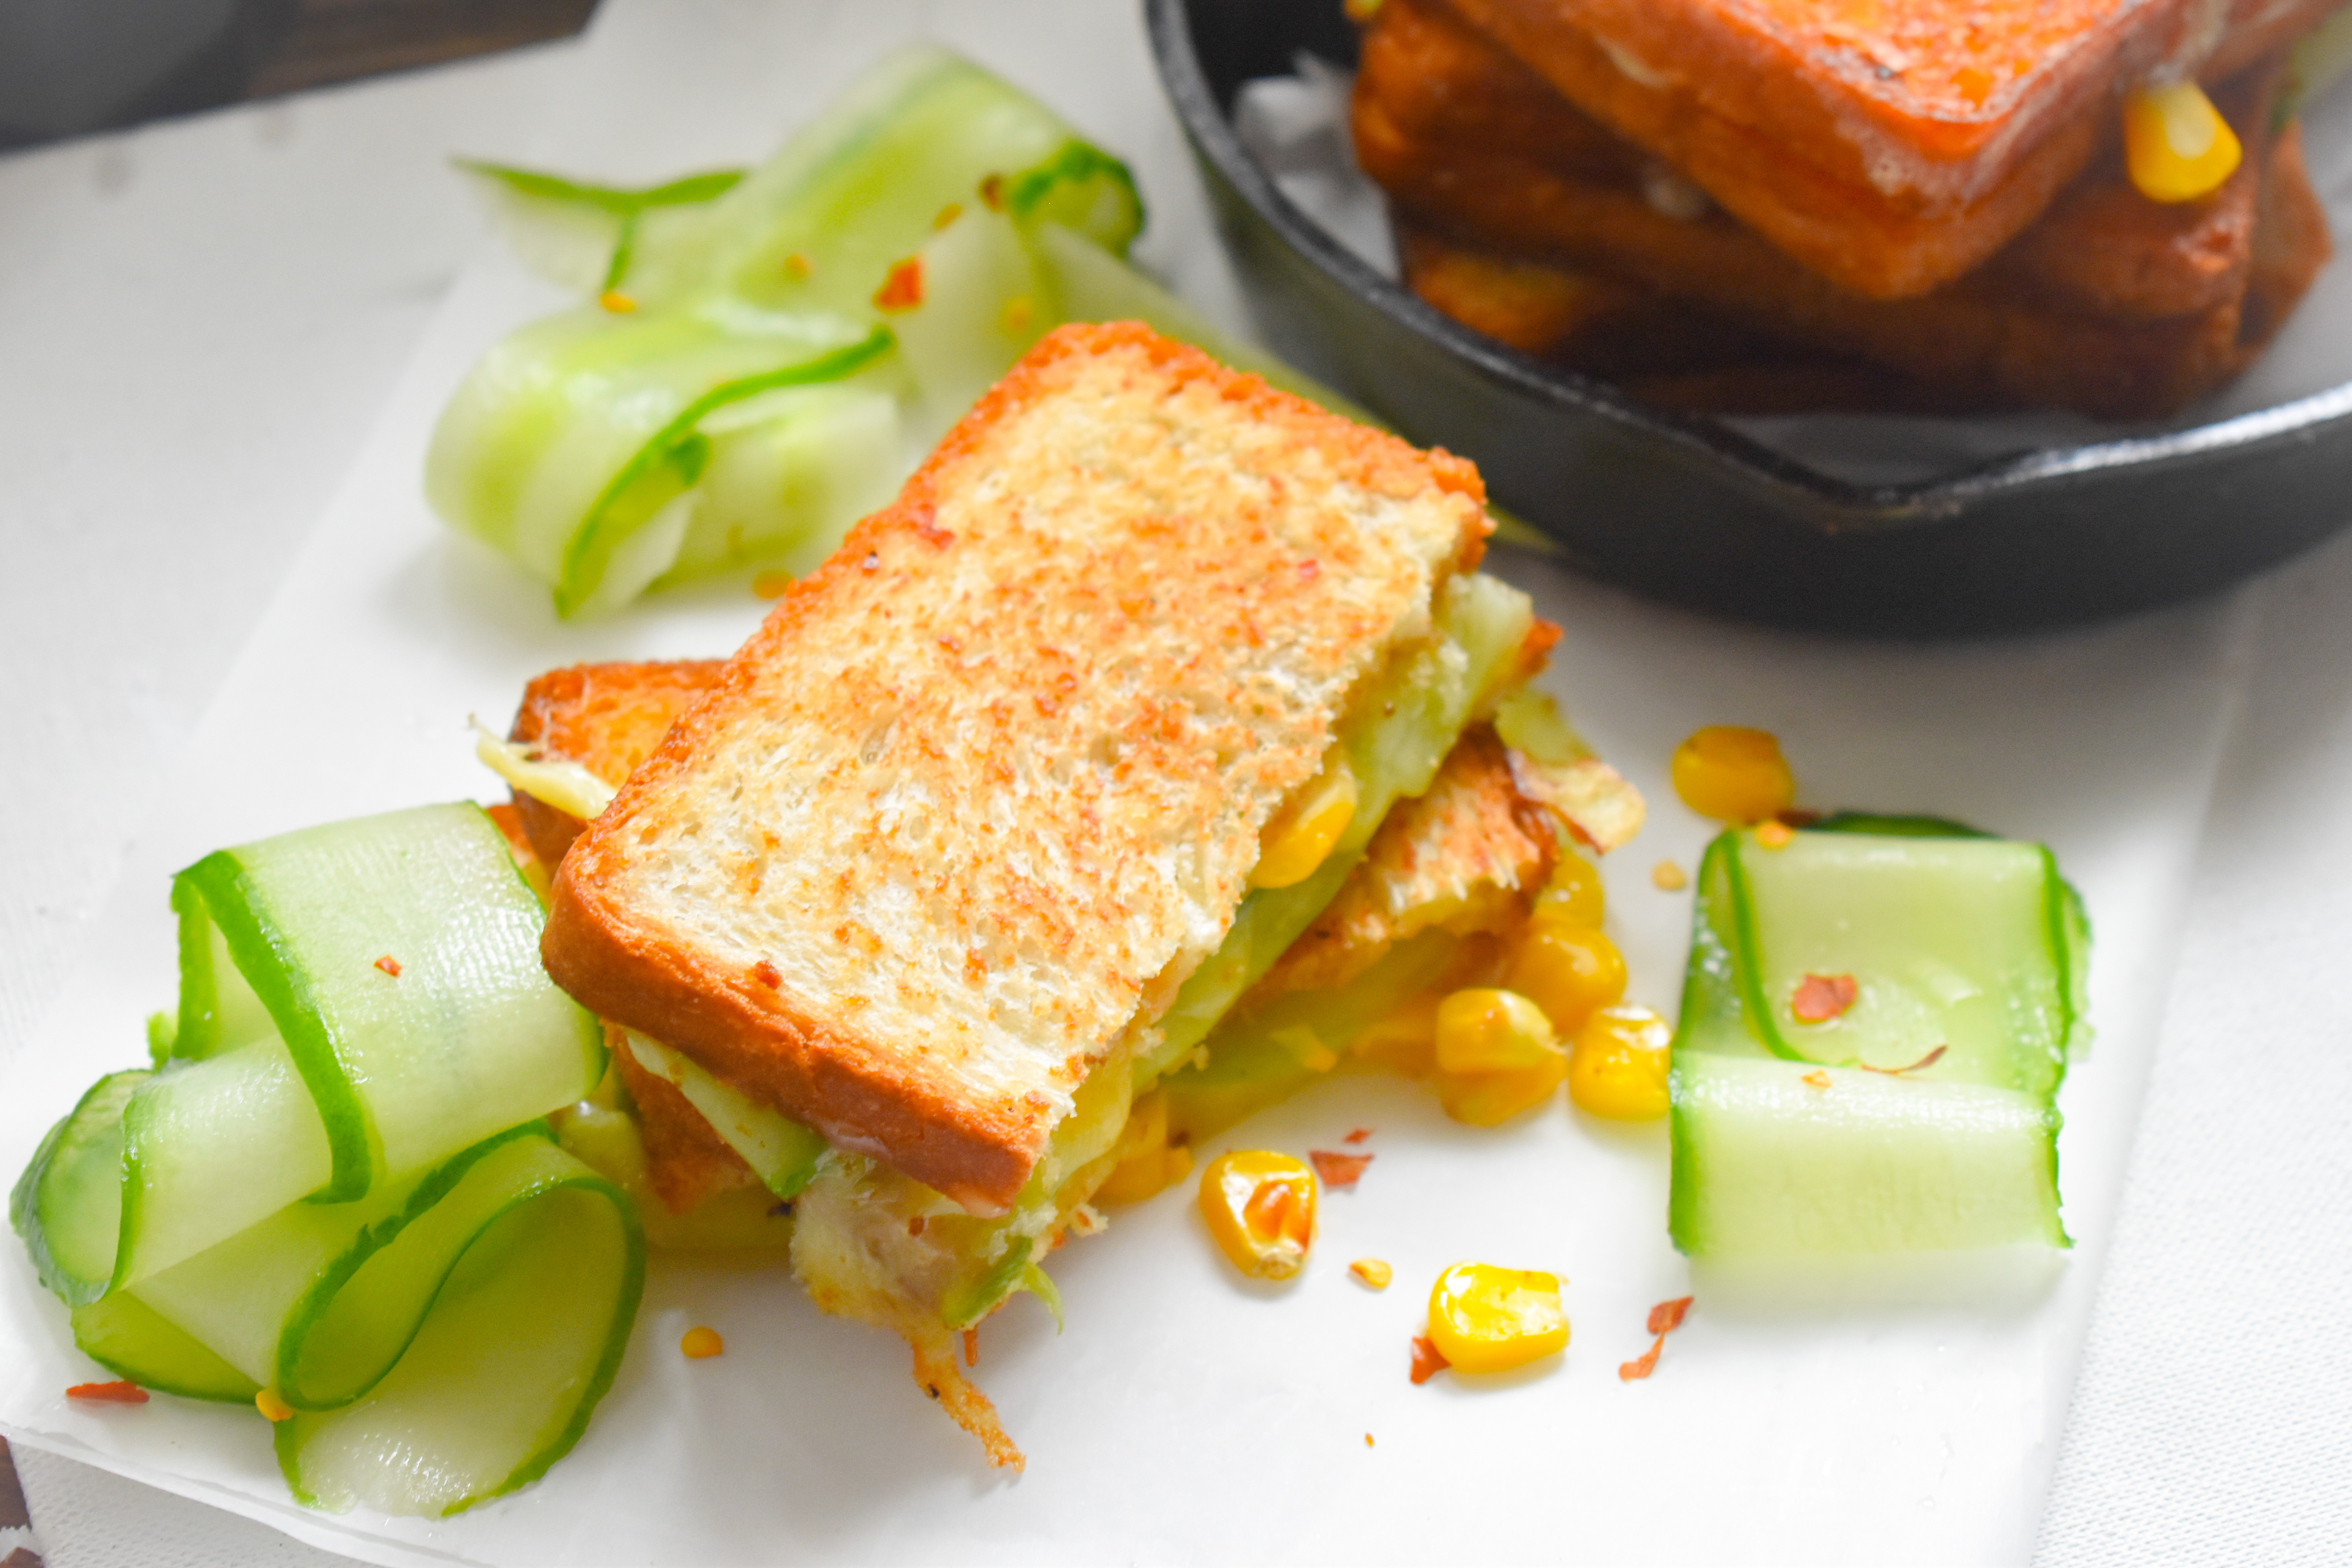 3C Sandwiches – Cheddar Cheese, Corn and Cucumber Grilled toast